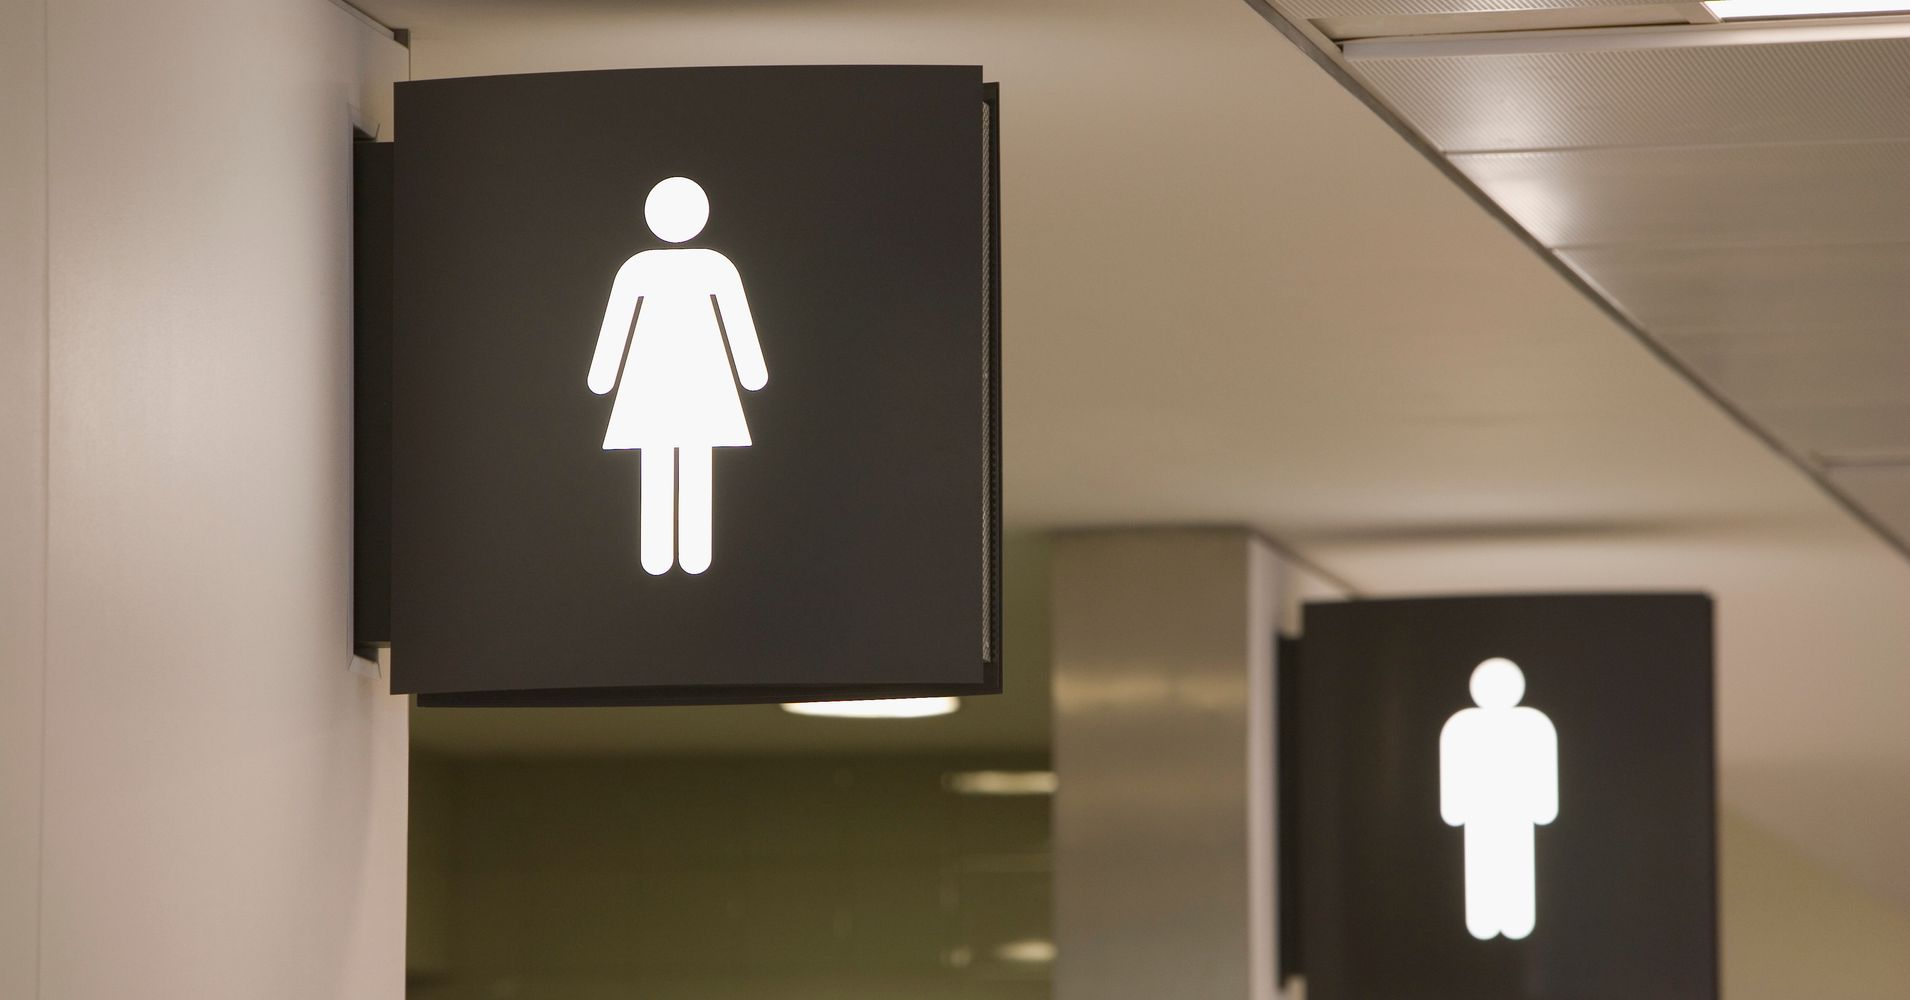 South dakota is the first state to pass a transphobic - Which states have bathroom bills ...